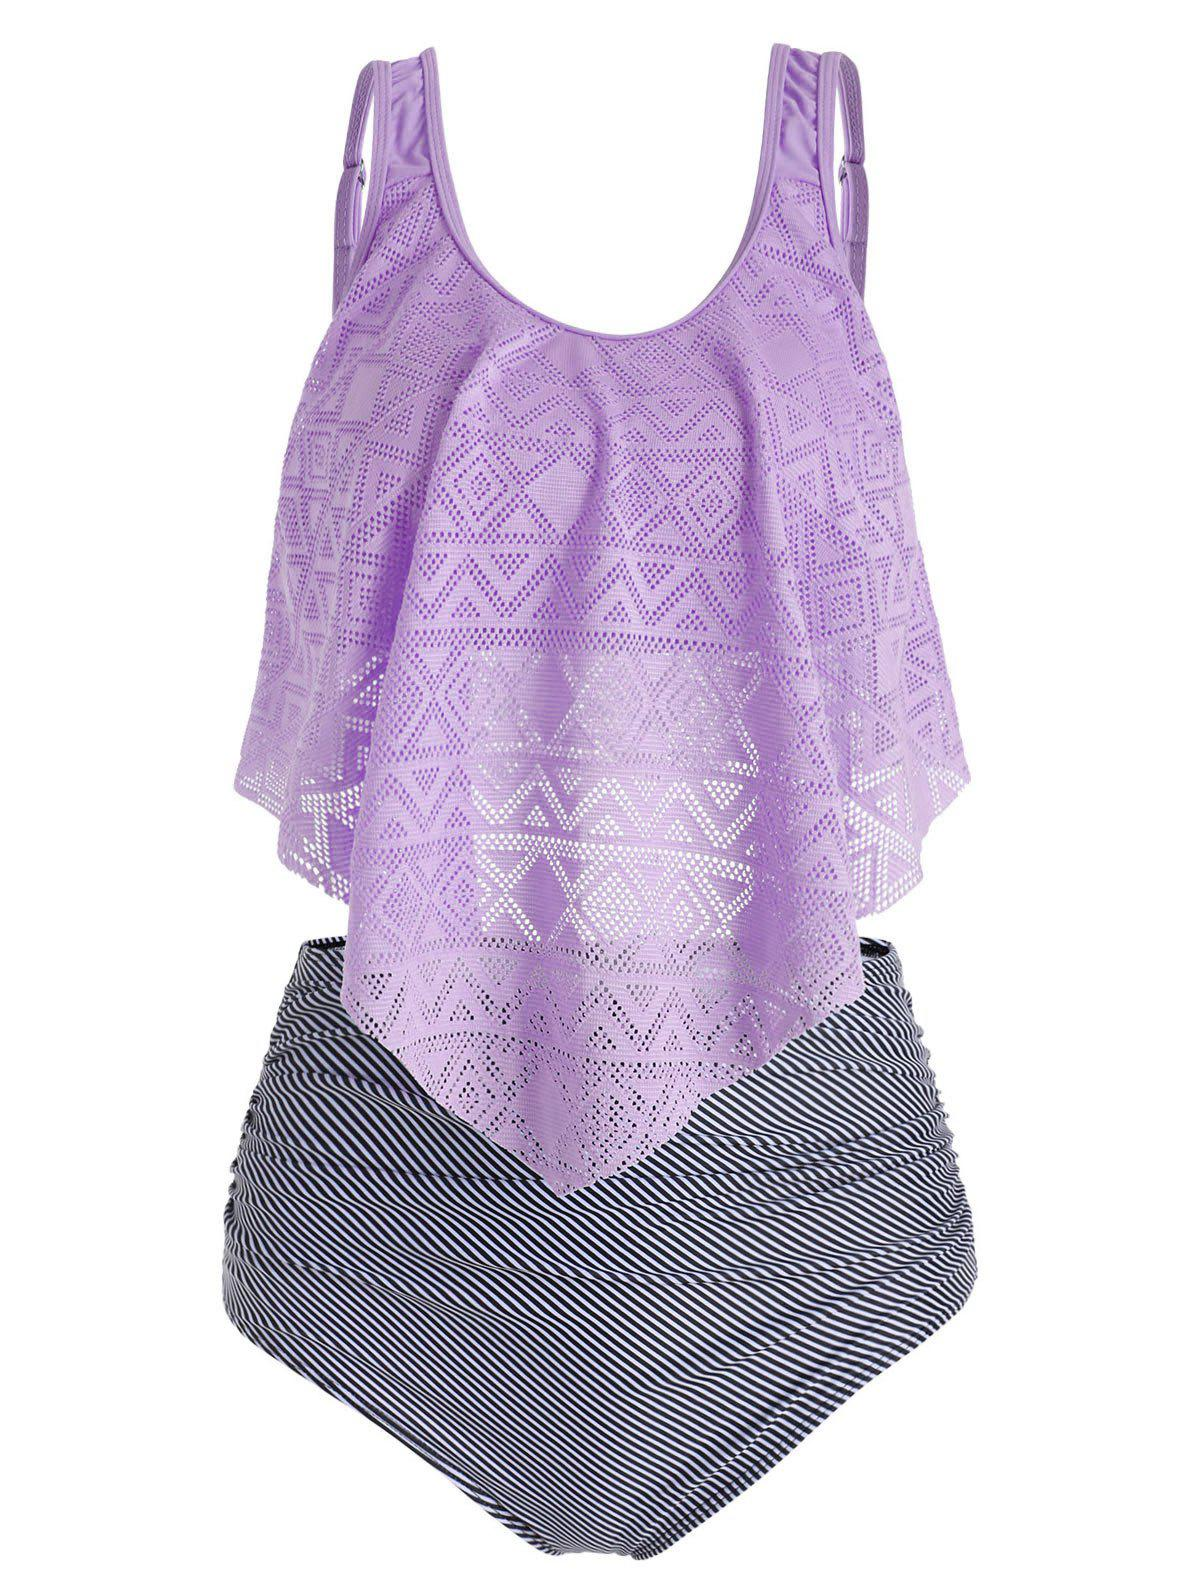 Perforated Flounce Ruched Floral Striped Tankini Swimsuit - PURPLE MIMOSA M